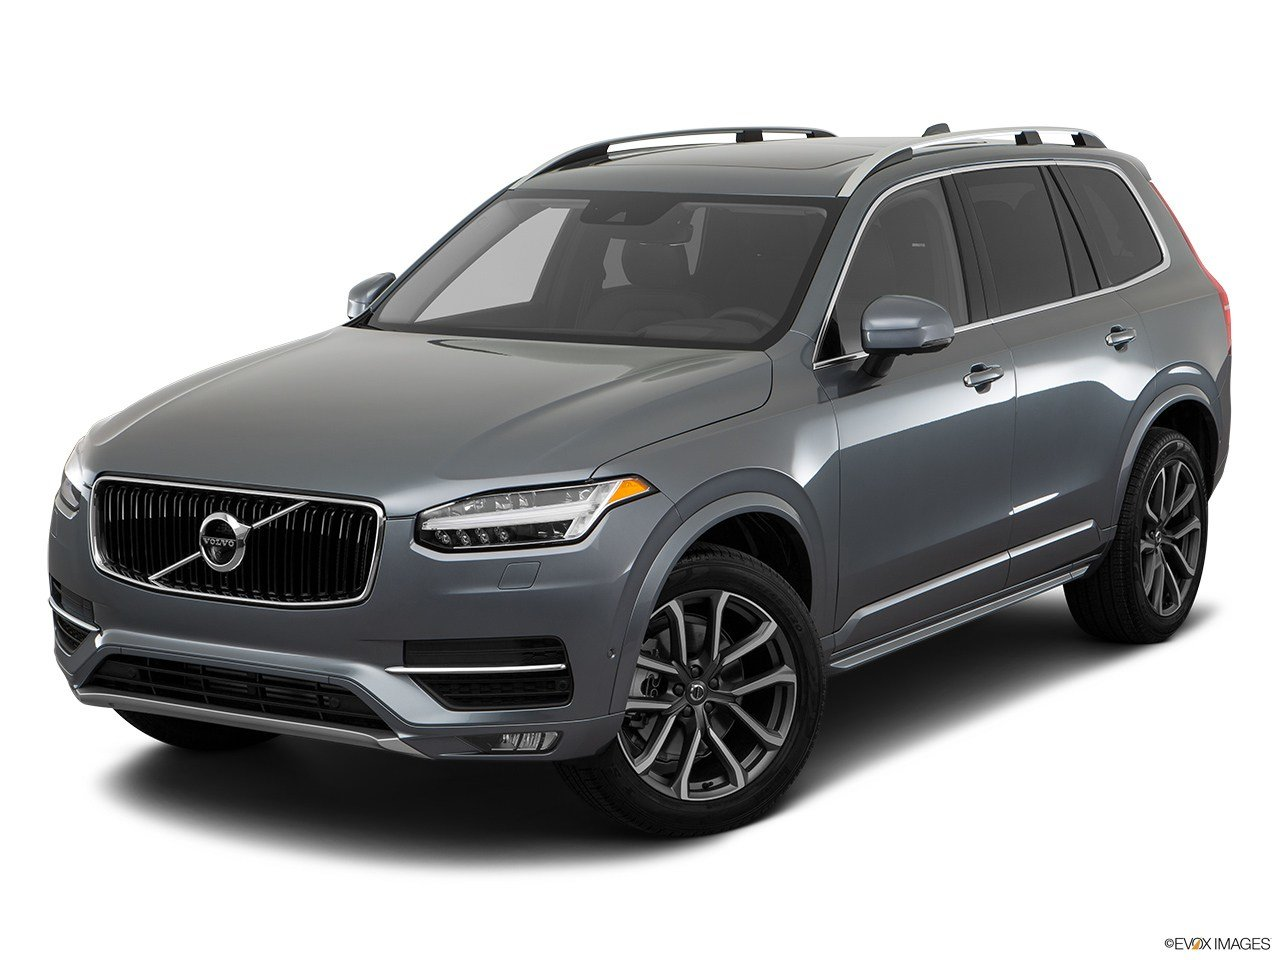 Latest Volvo Xc90 2018 T6 Excellence In Uae New Car Prices Free Download